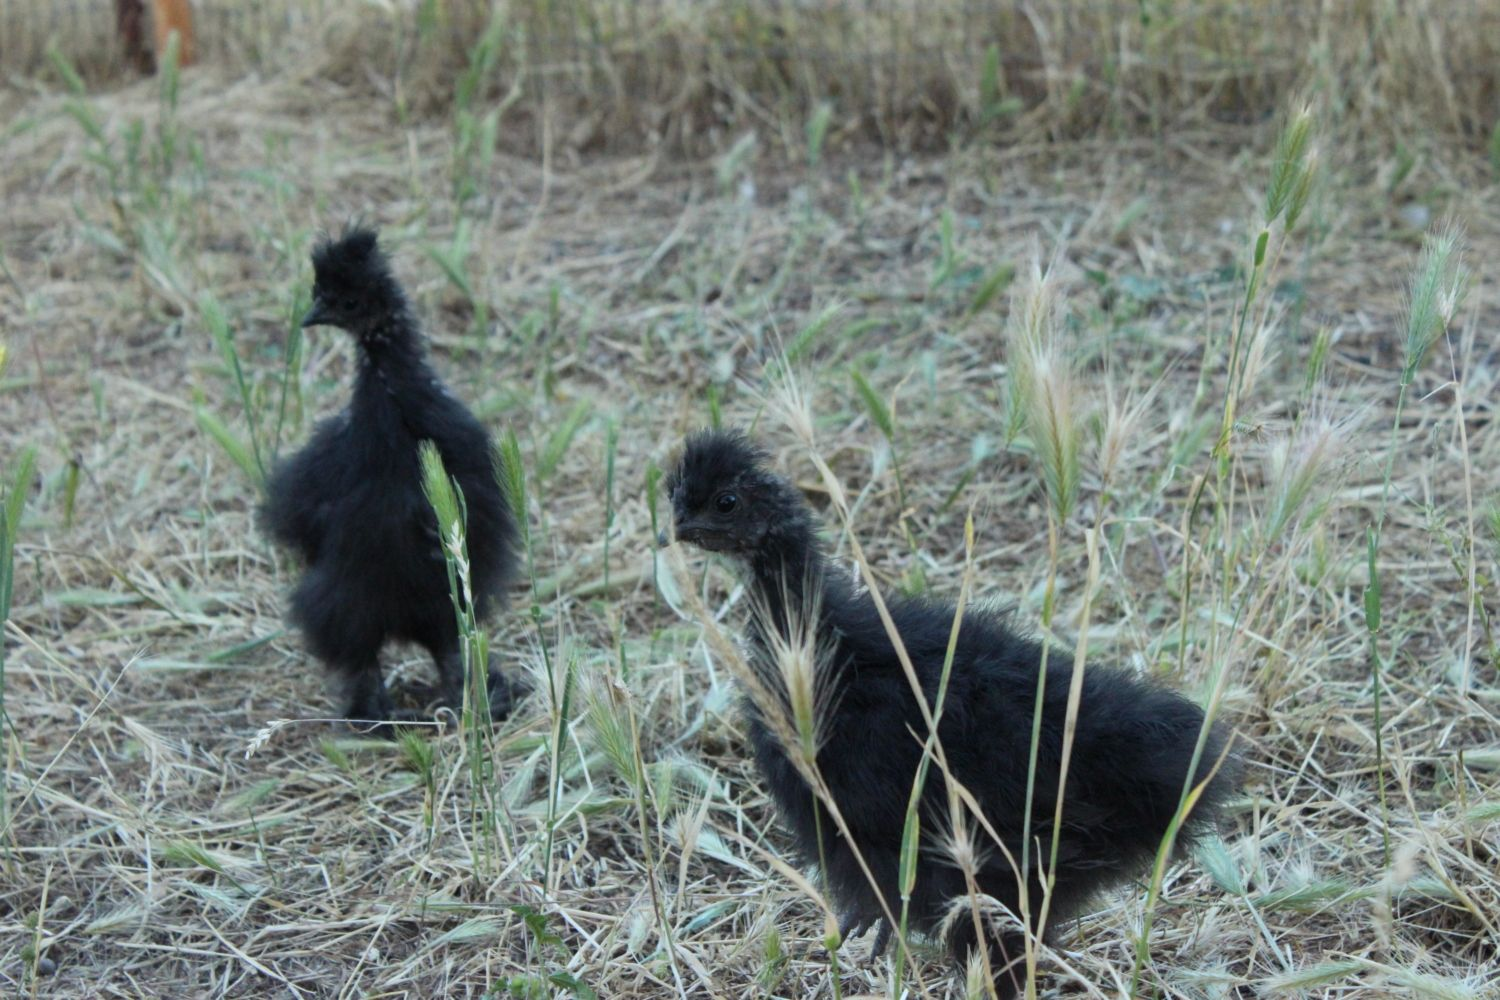 Maligator's photos in Do chickens know their breed?